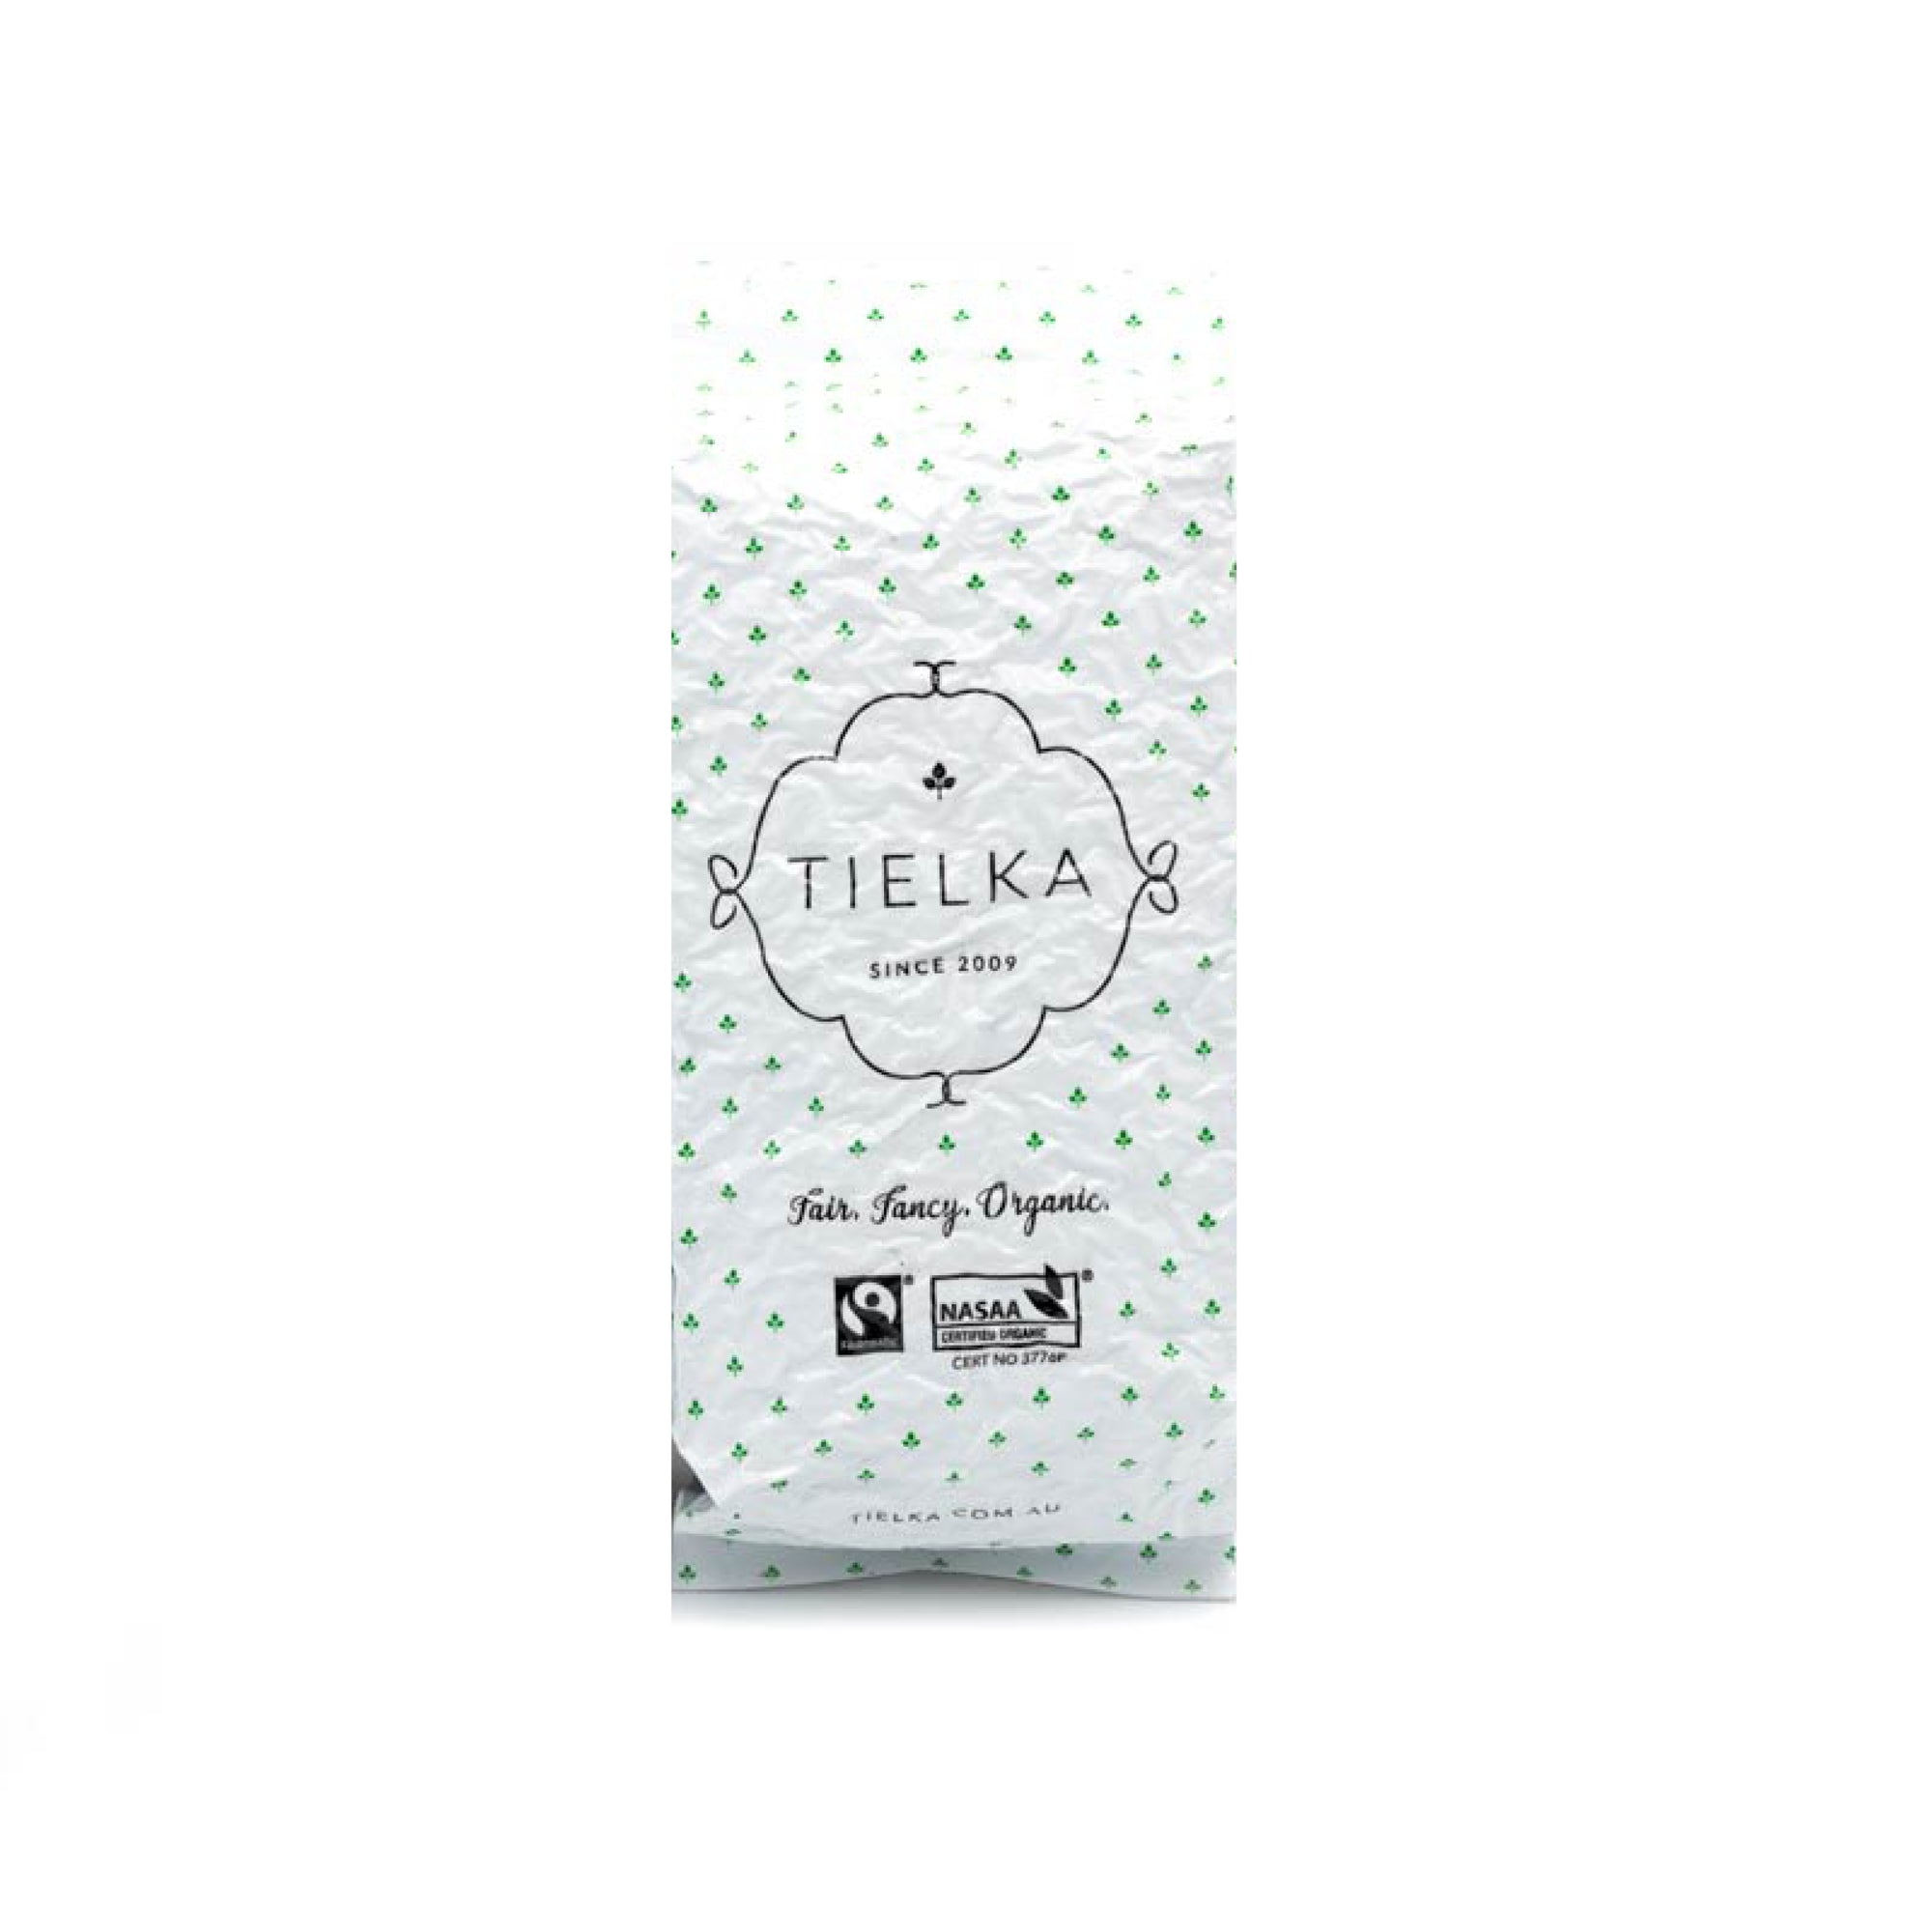 Fairtrade Organic Loose Leaf Lady Betty Black Tea Box by Tielka